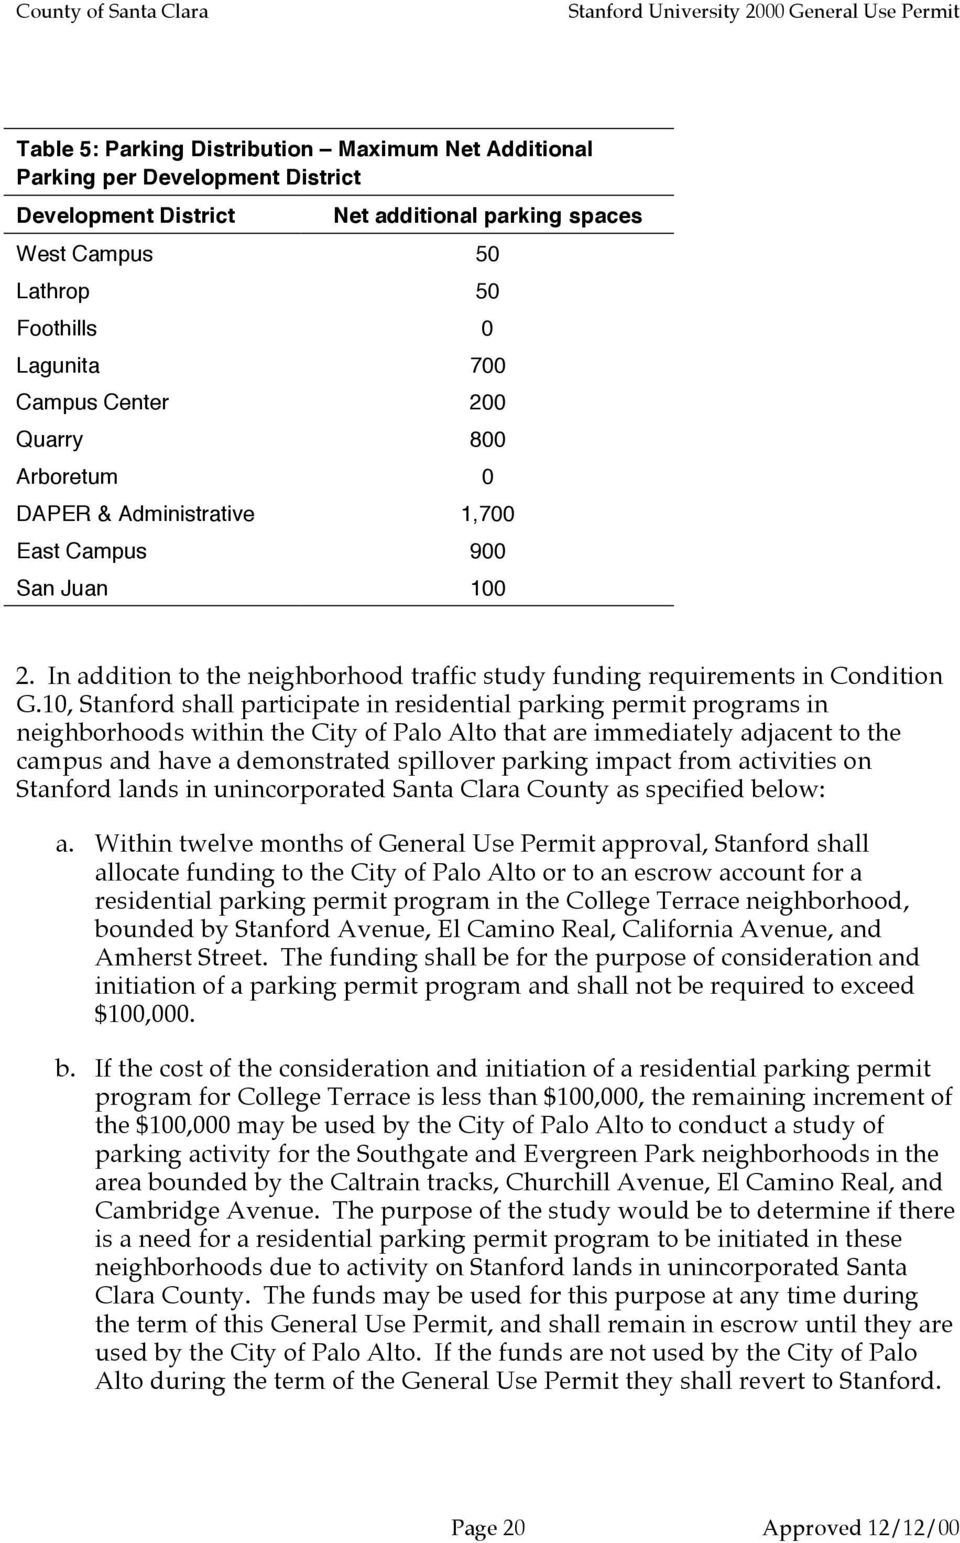 10, Stanford shall participate in residential parking permit programs in neighborhoods within the City of Palo Alto that are immediately adjacent to the campus and have a demonstrated spillover